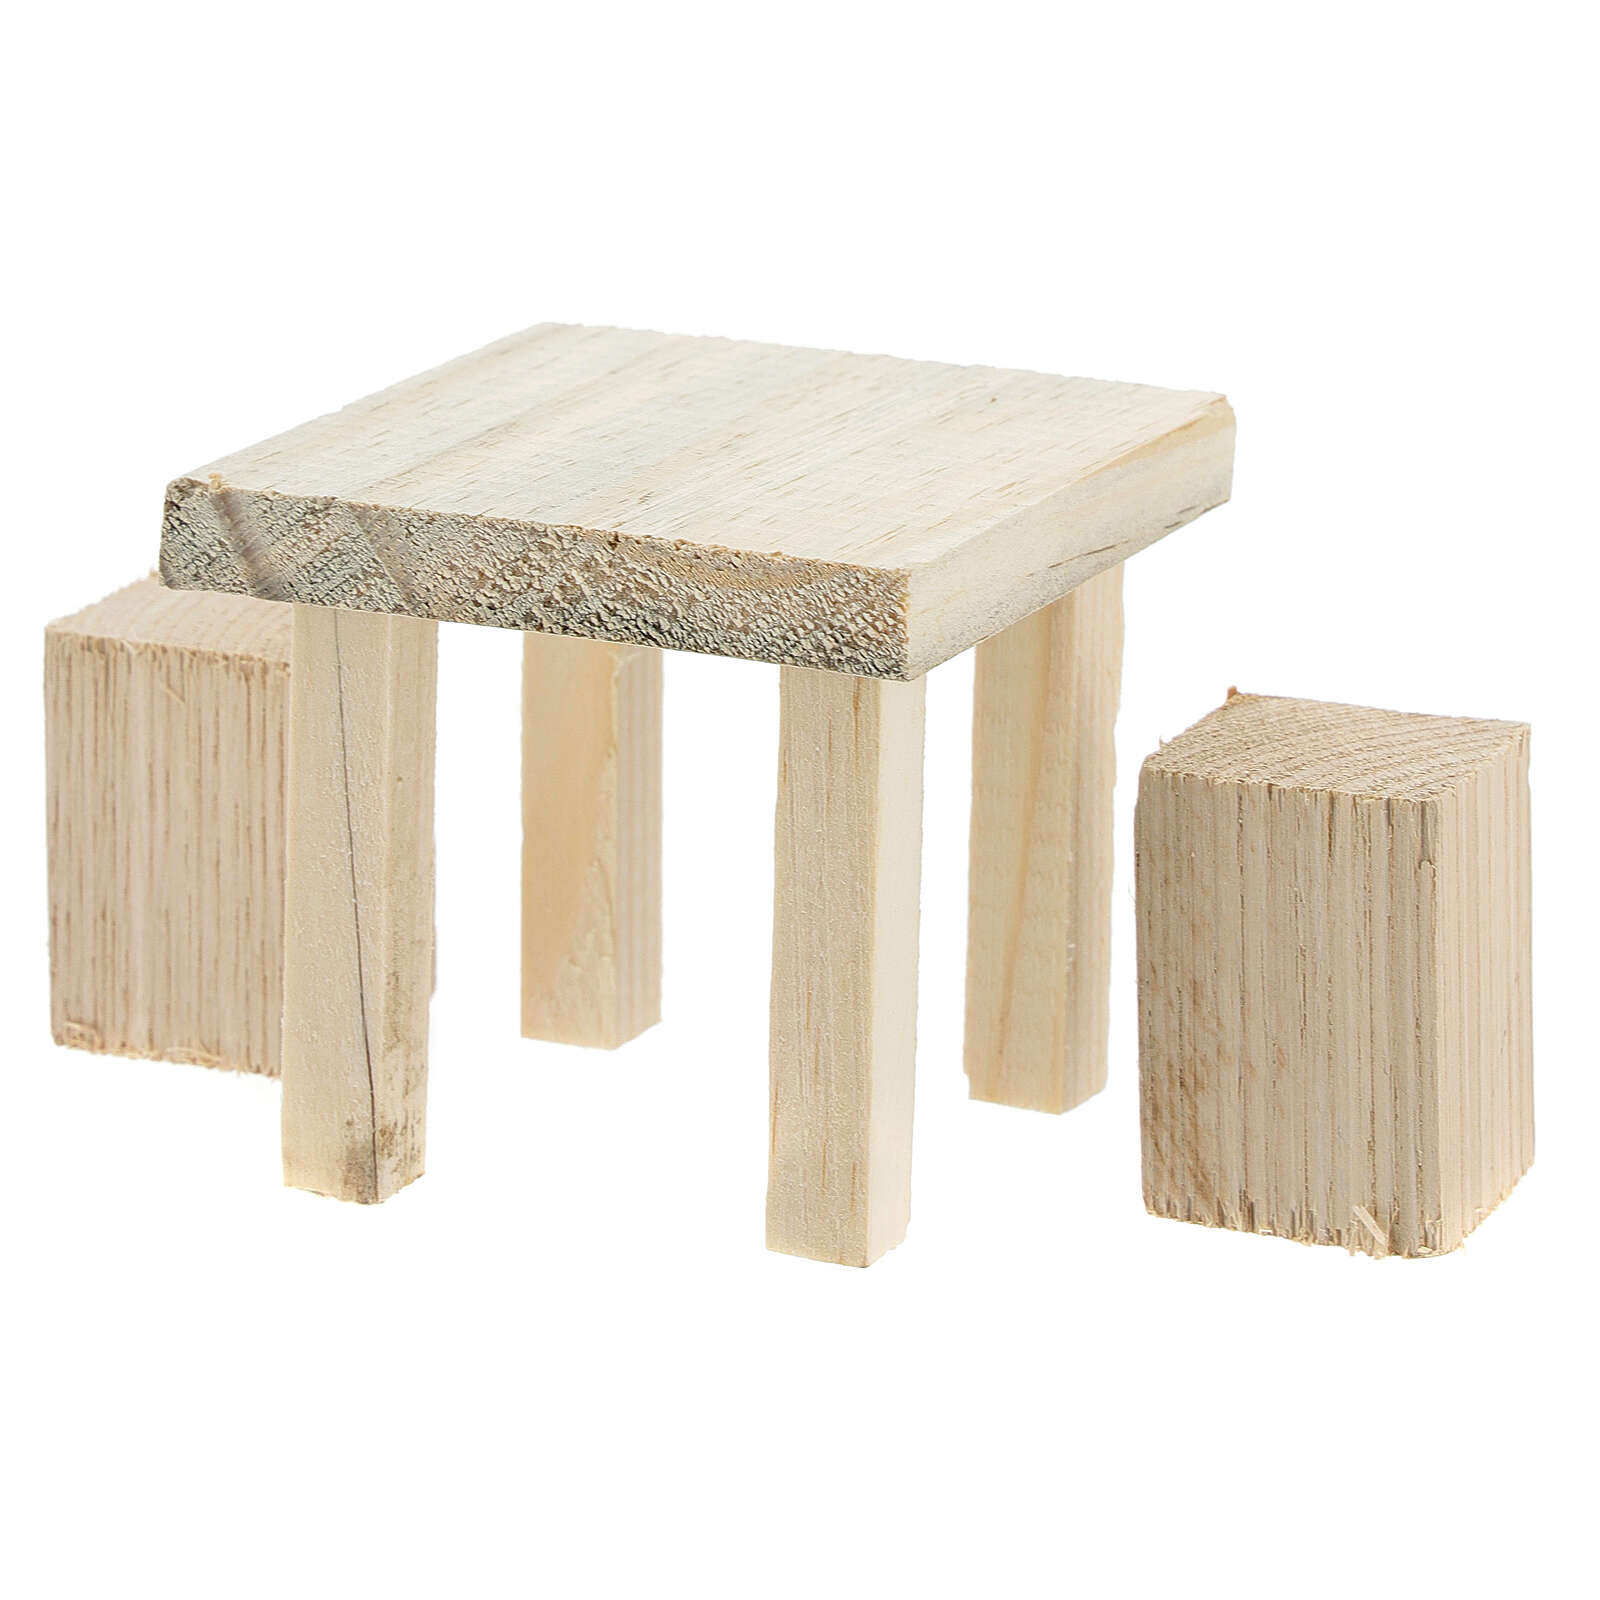 Wood table 6x7x7 cm with stools 4x2x2 cm for Nativity Scene with 14 cm figurines 4